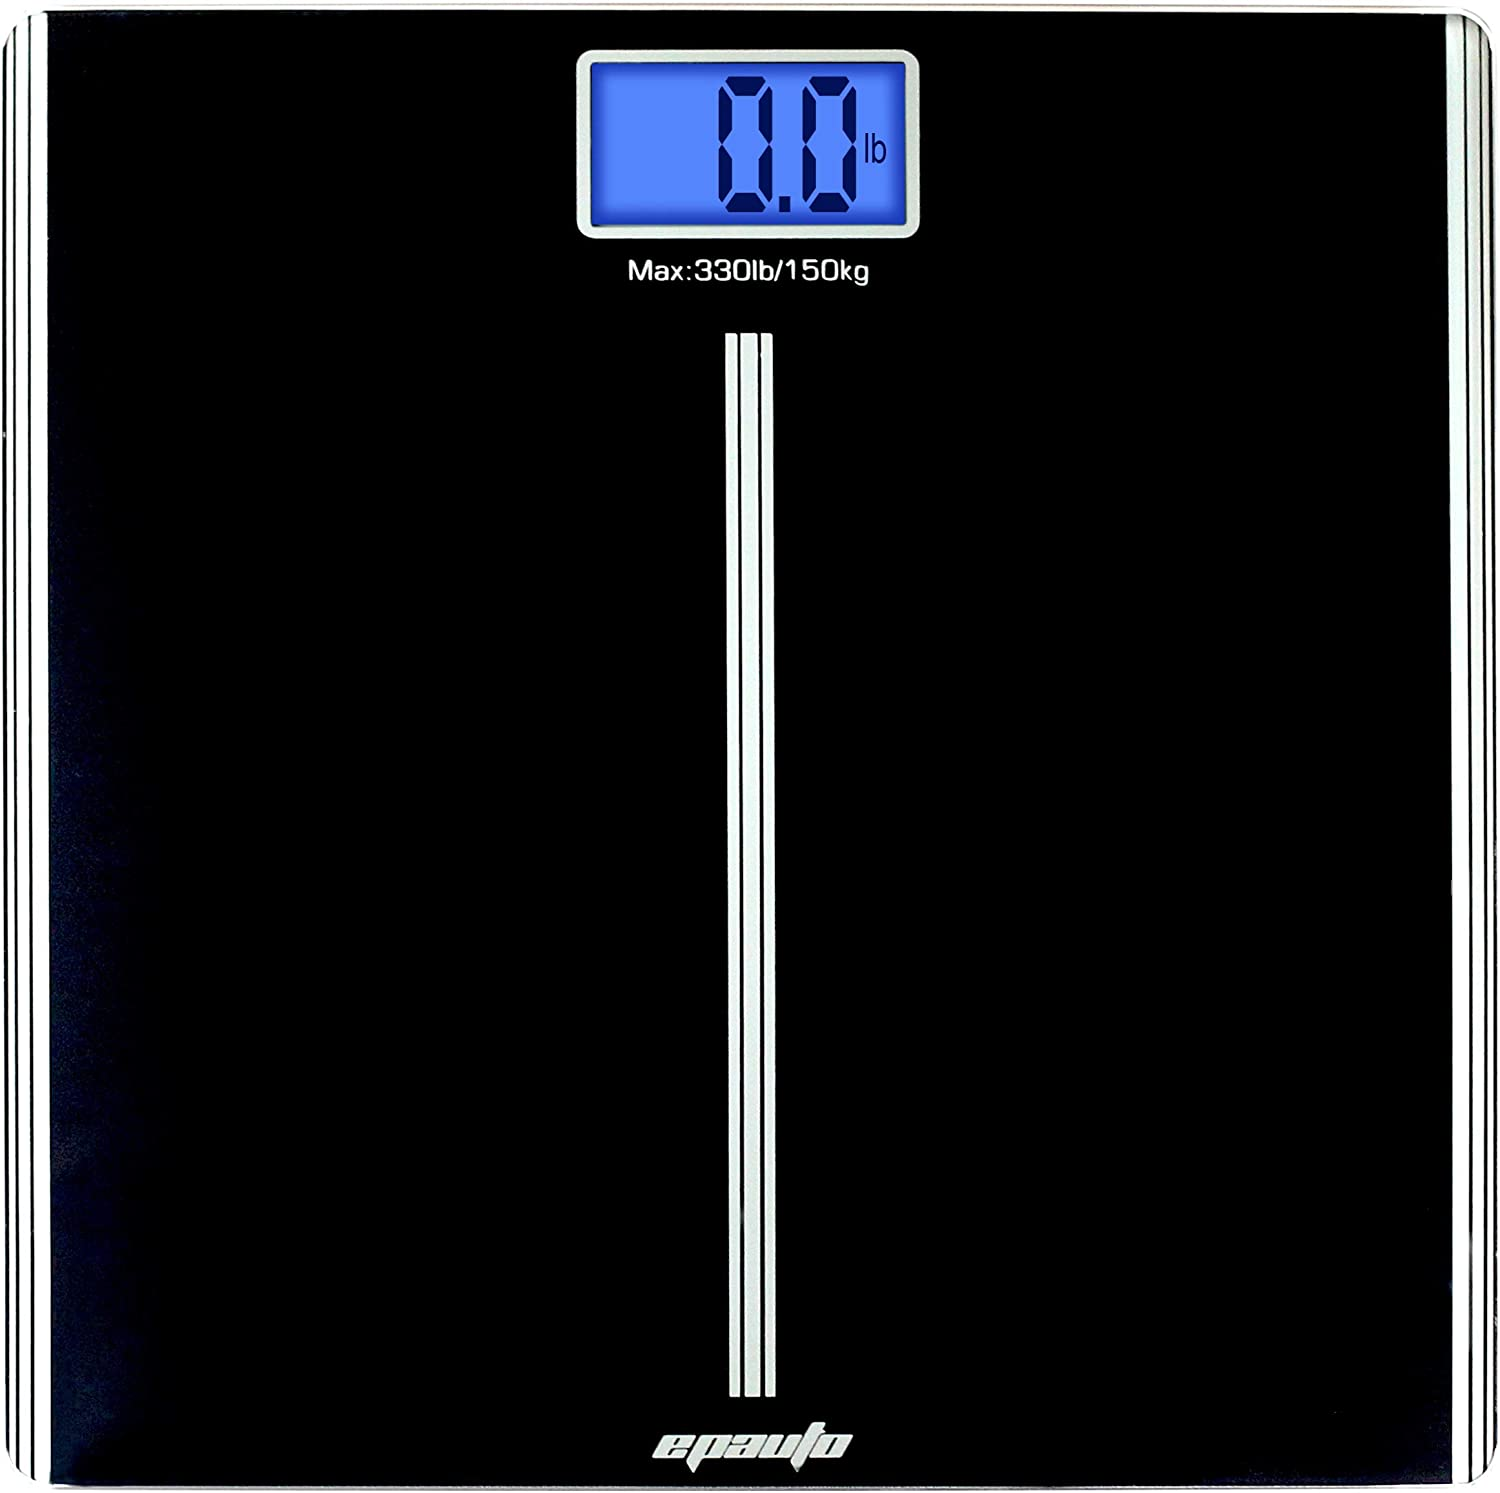 EPAuto Precision Digital Bathroom Body Weight Scale, Black